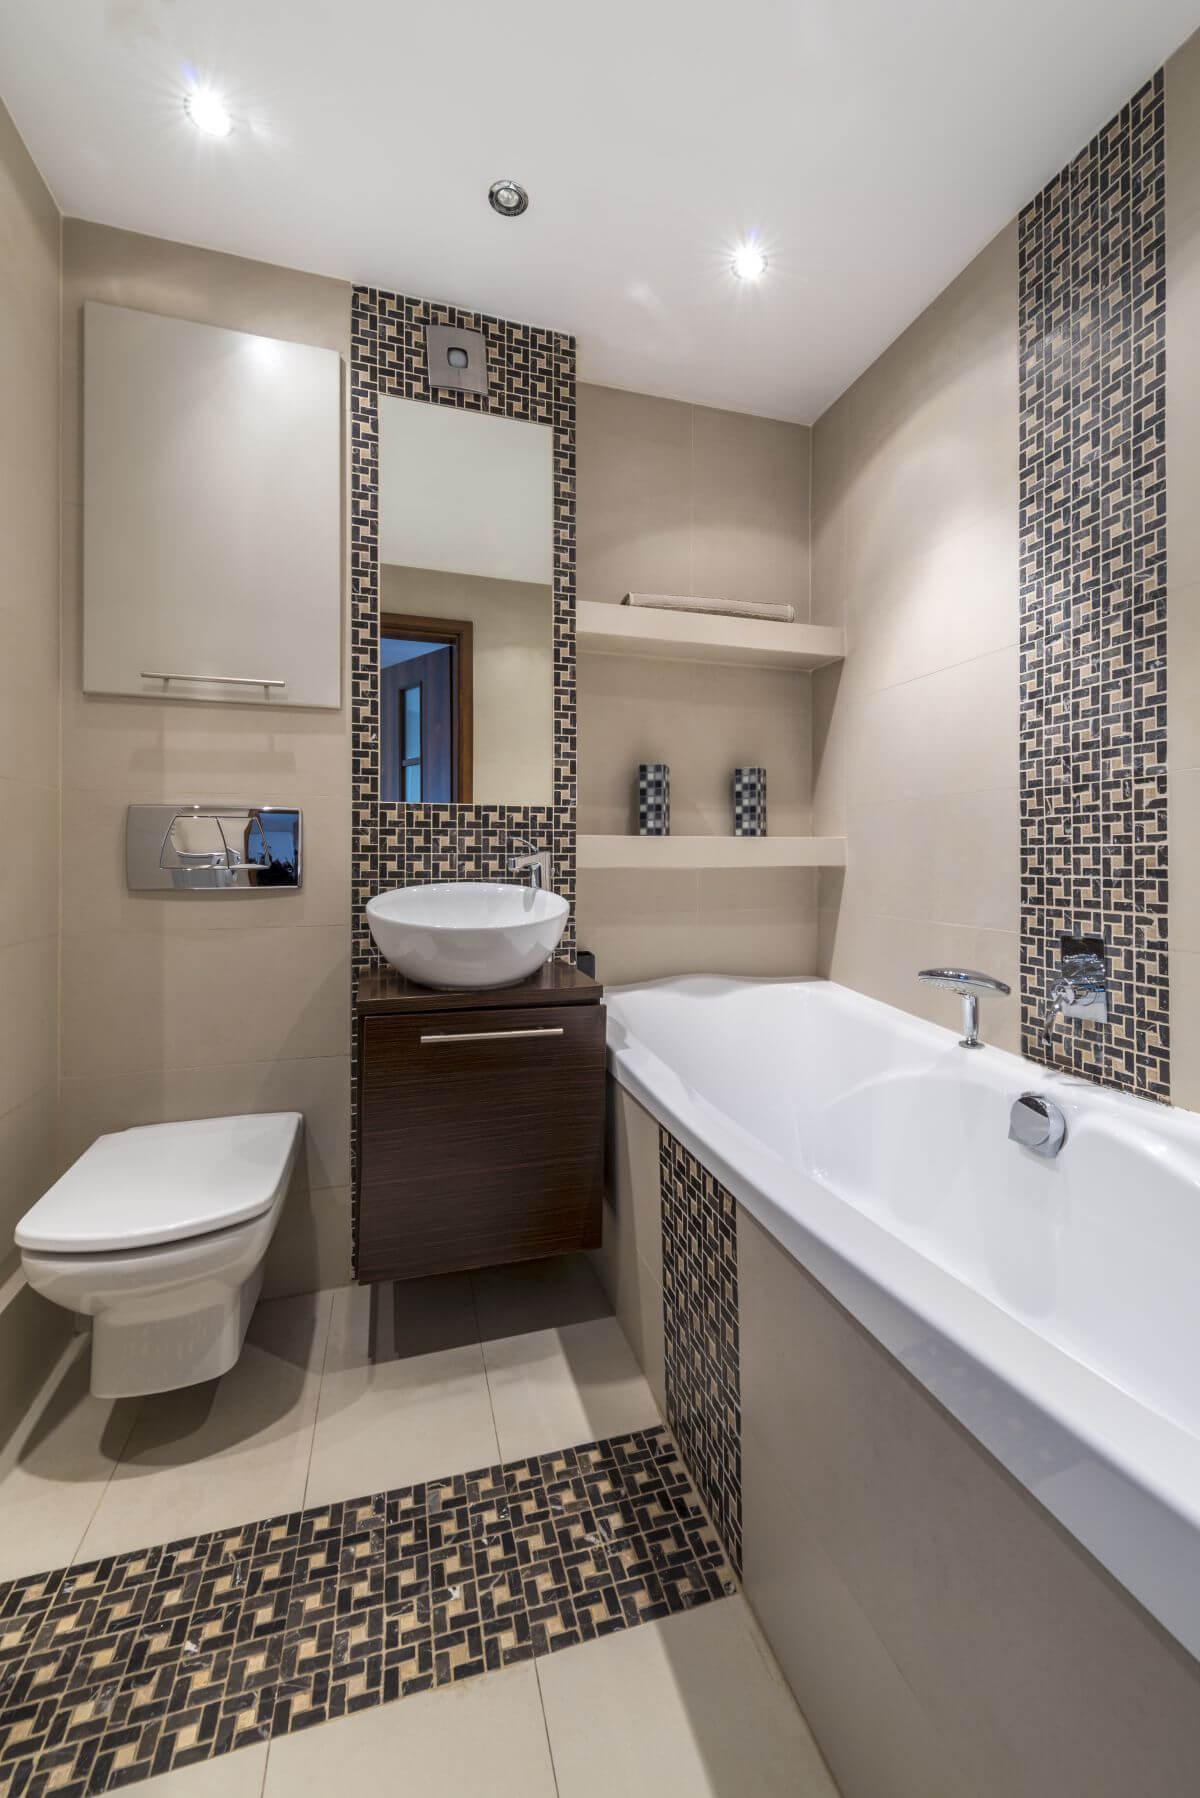 minimalist design with repeated tile patterns - Designing Bathroom